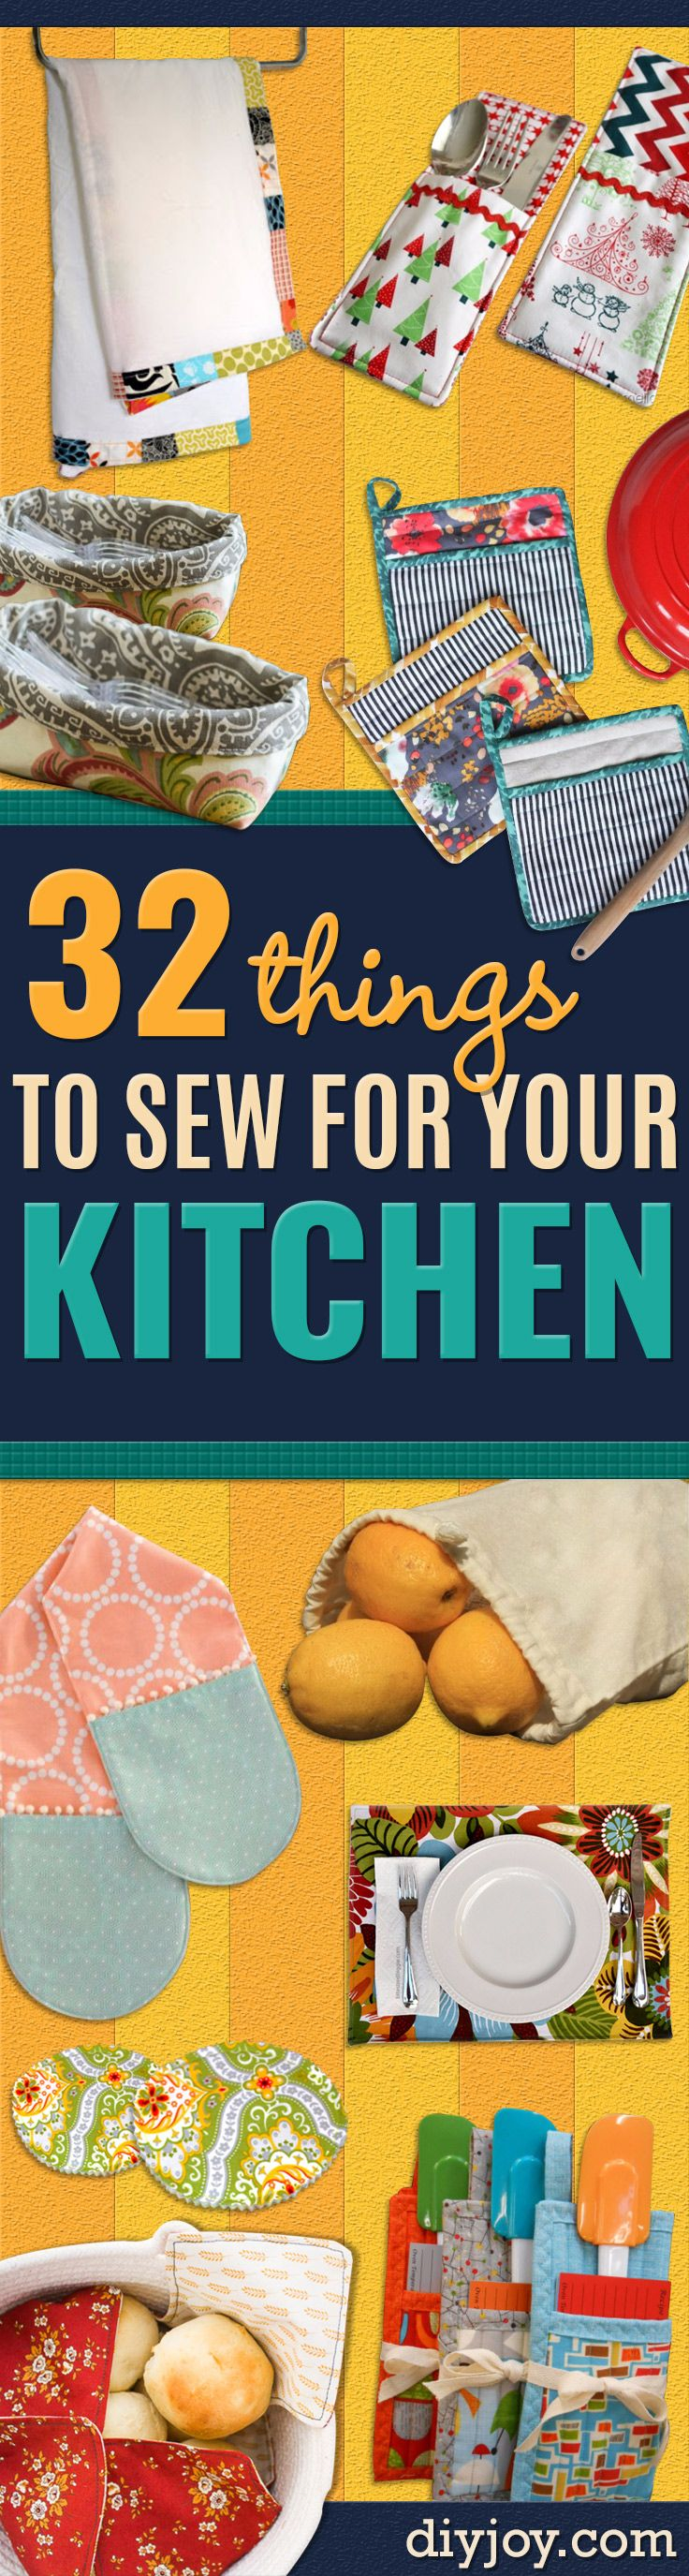 DIY Sewing Projects for the Kitchen – Easy Sewing Tutorials and Patterns for Towel